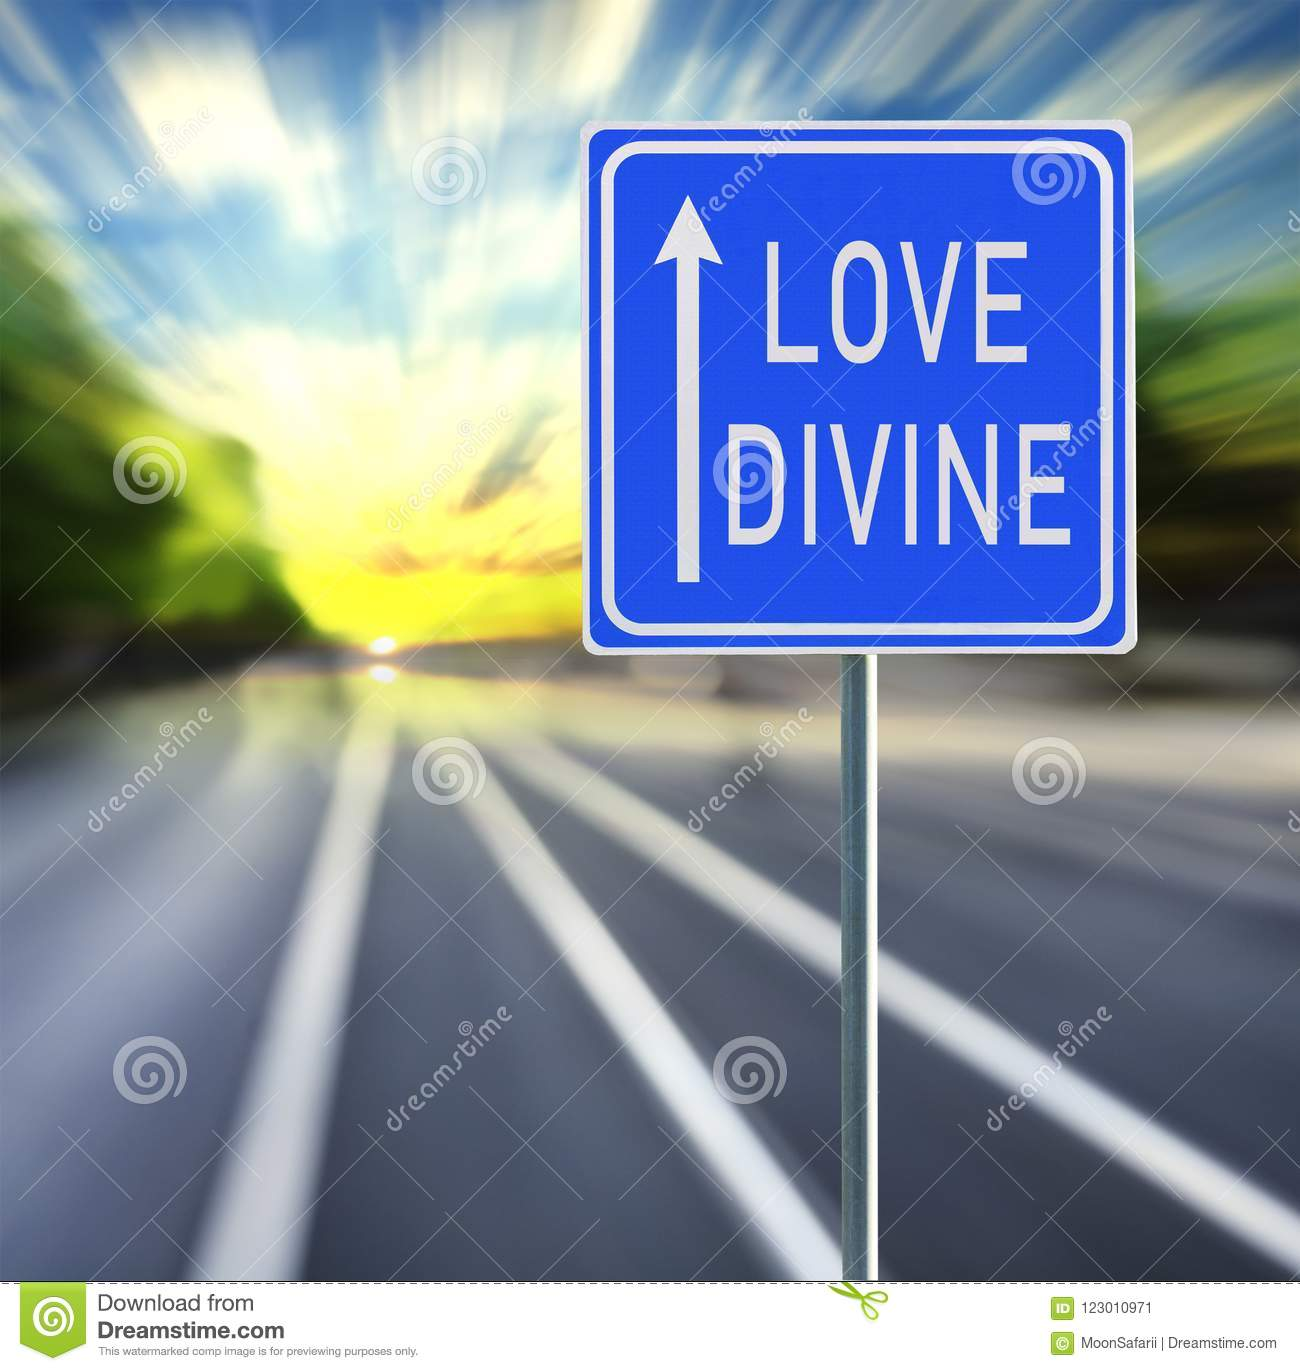 Love Divine Road Sign on a Speedy Background with Sunset.